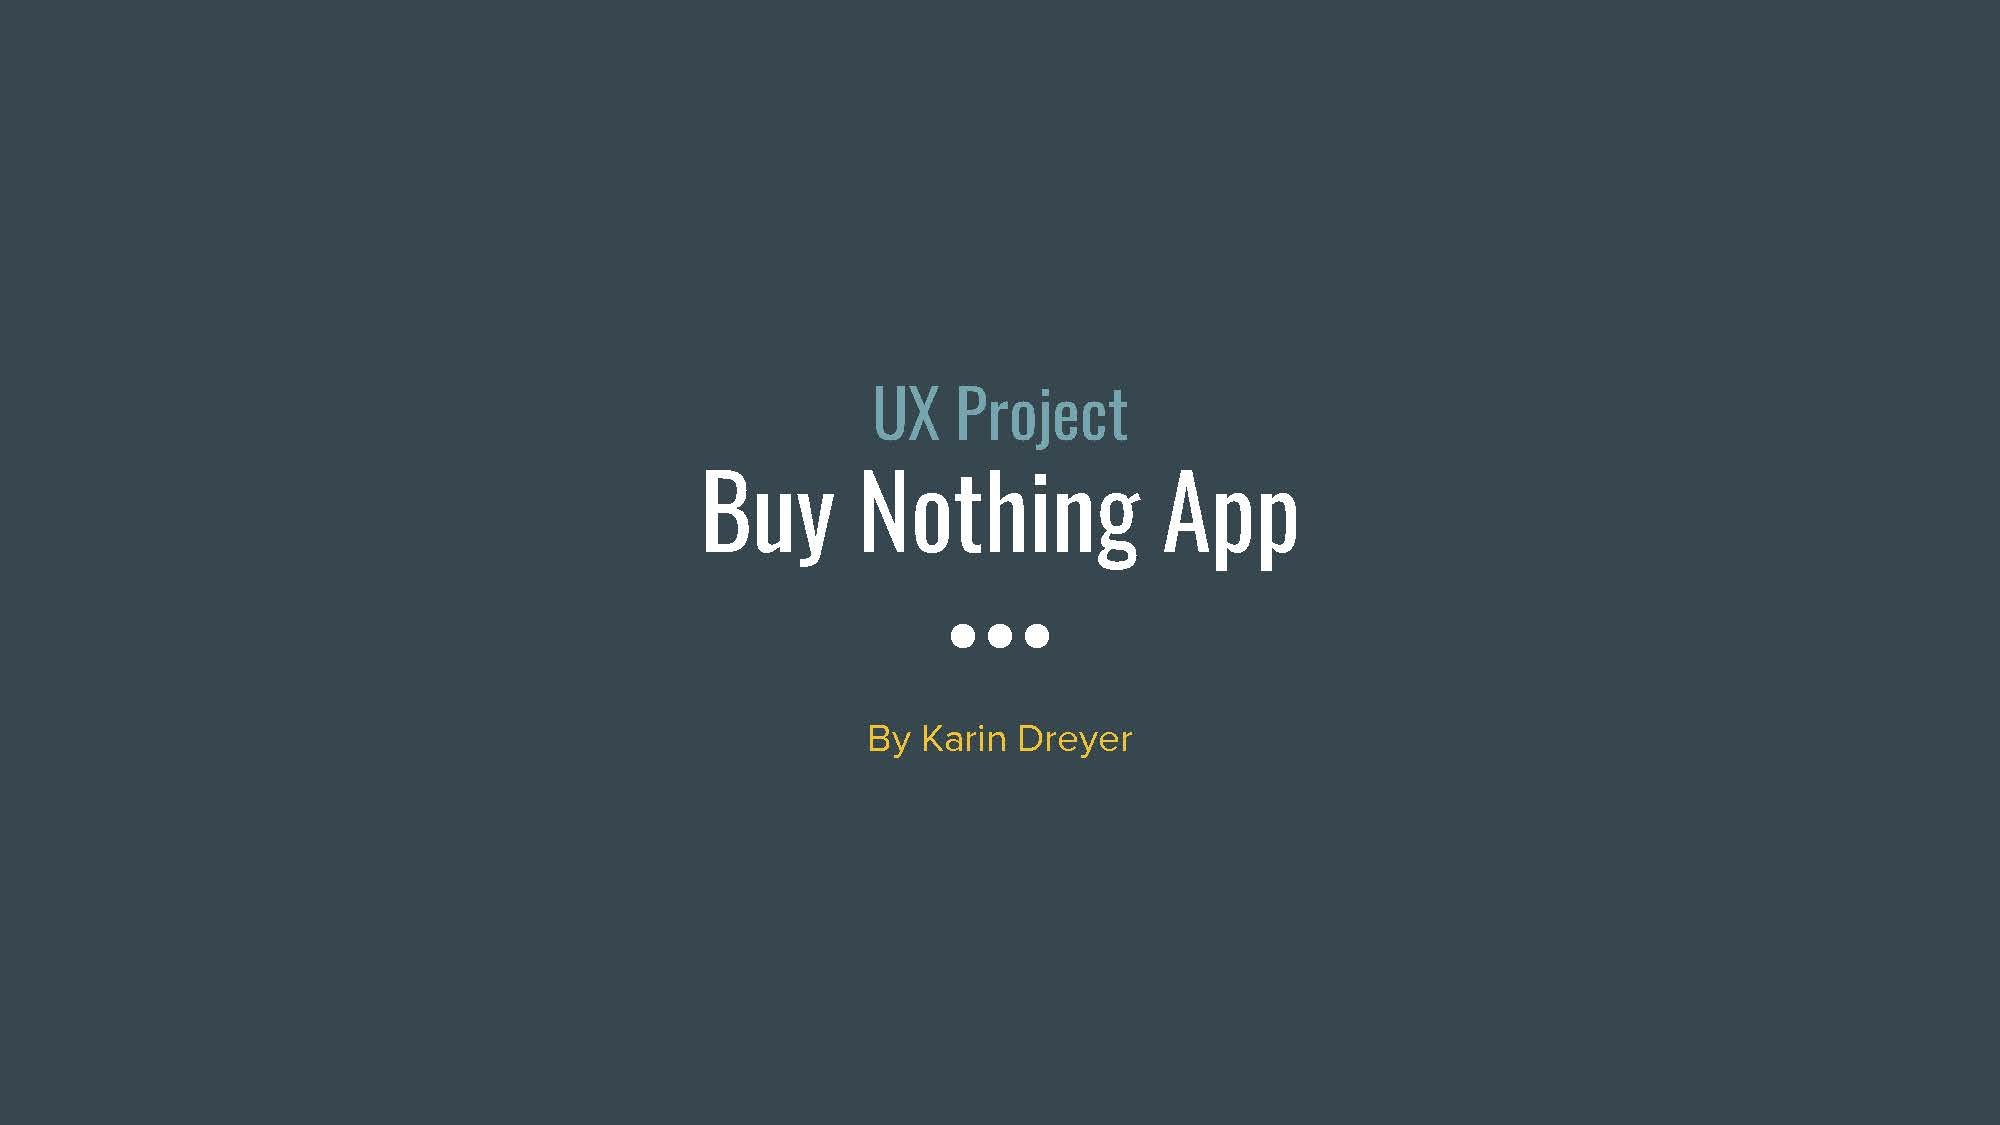 UX Project - Buy Nothing_Page_01.jpg